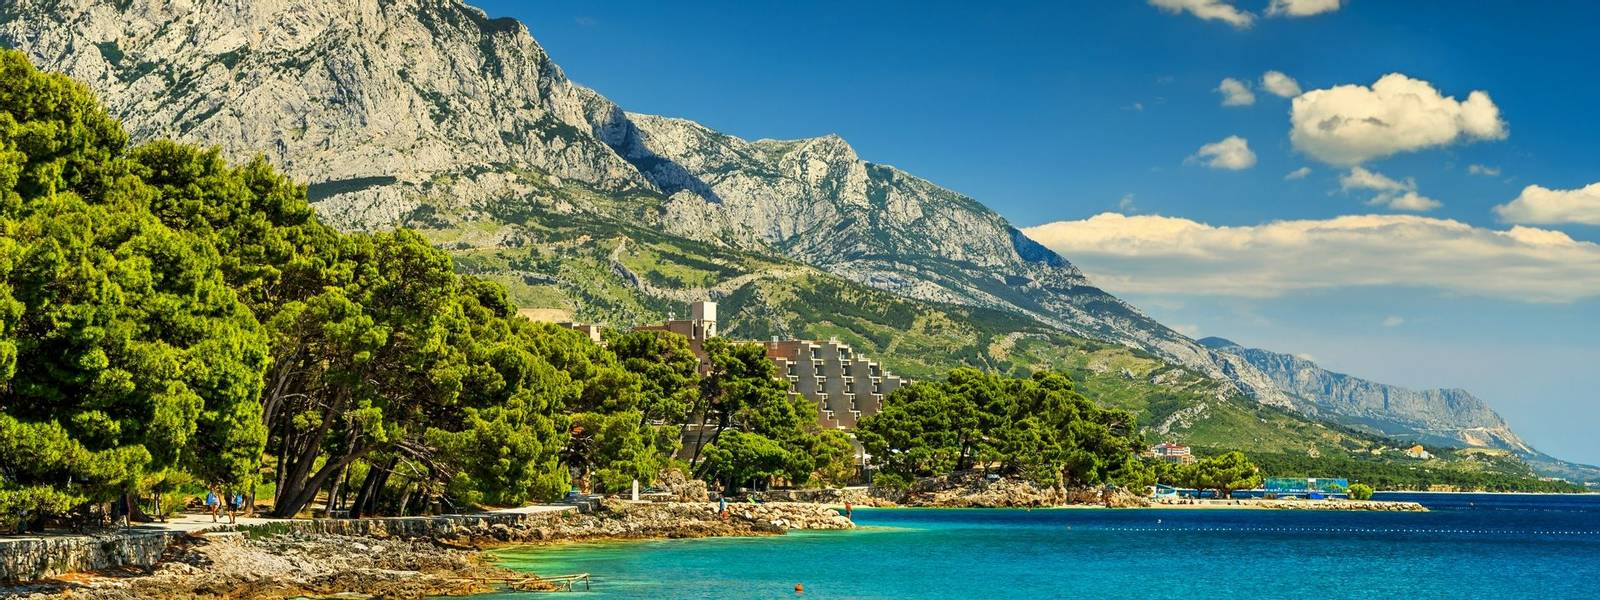 Beautiful bay and beach,Brela,Makarska riviera,Dalmatia,Croatia,Europe